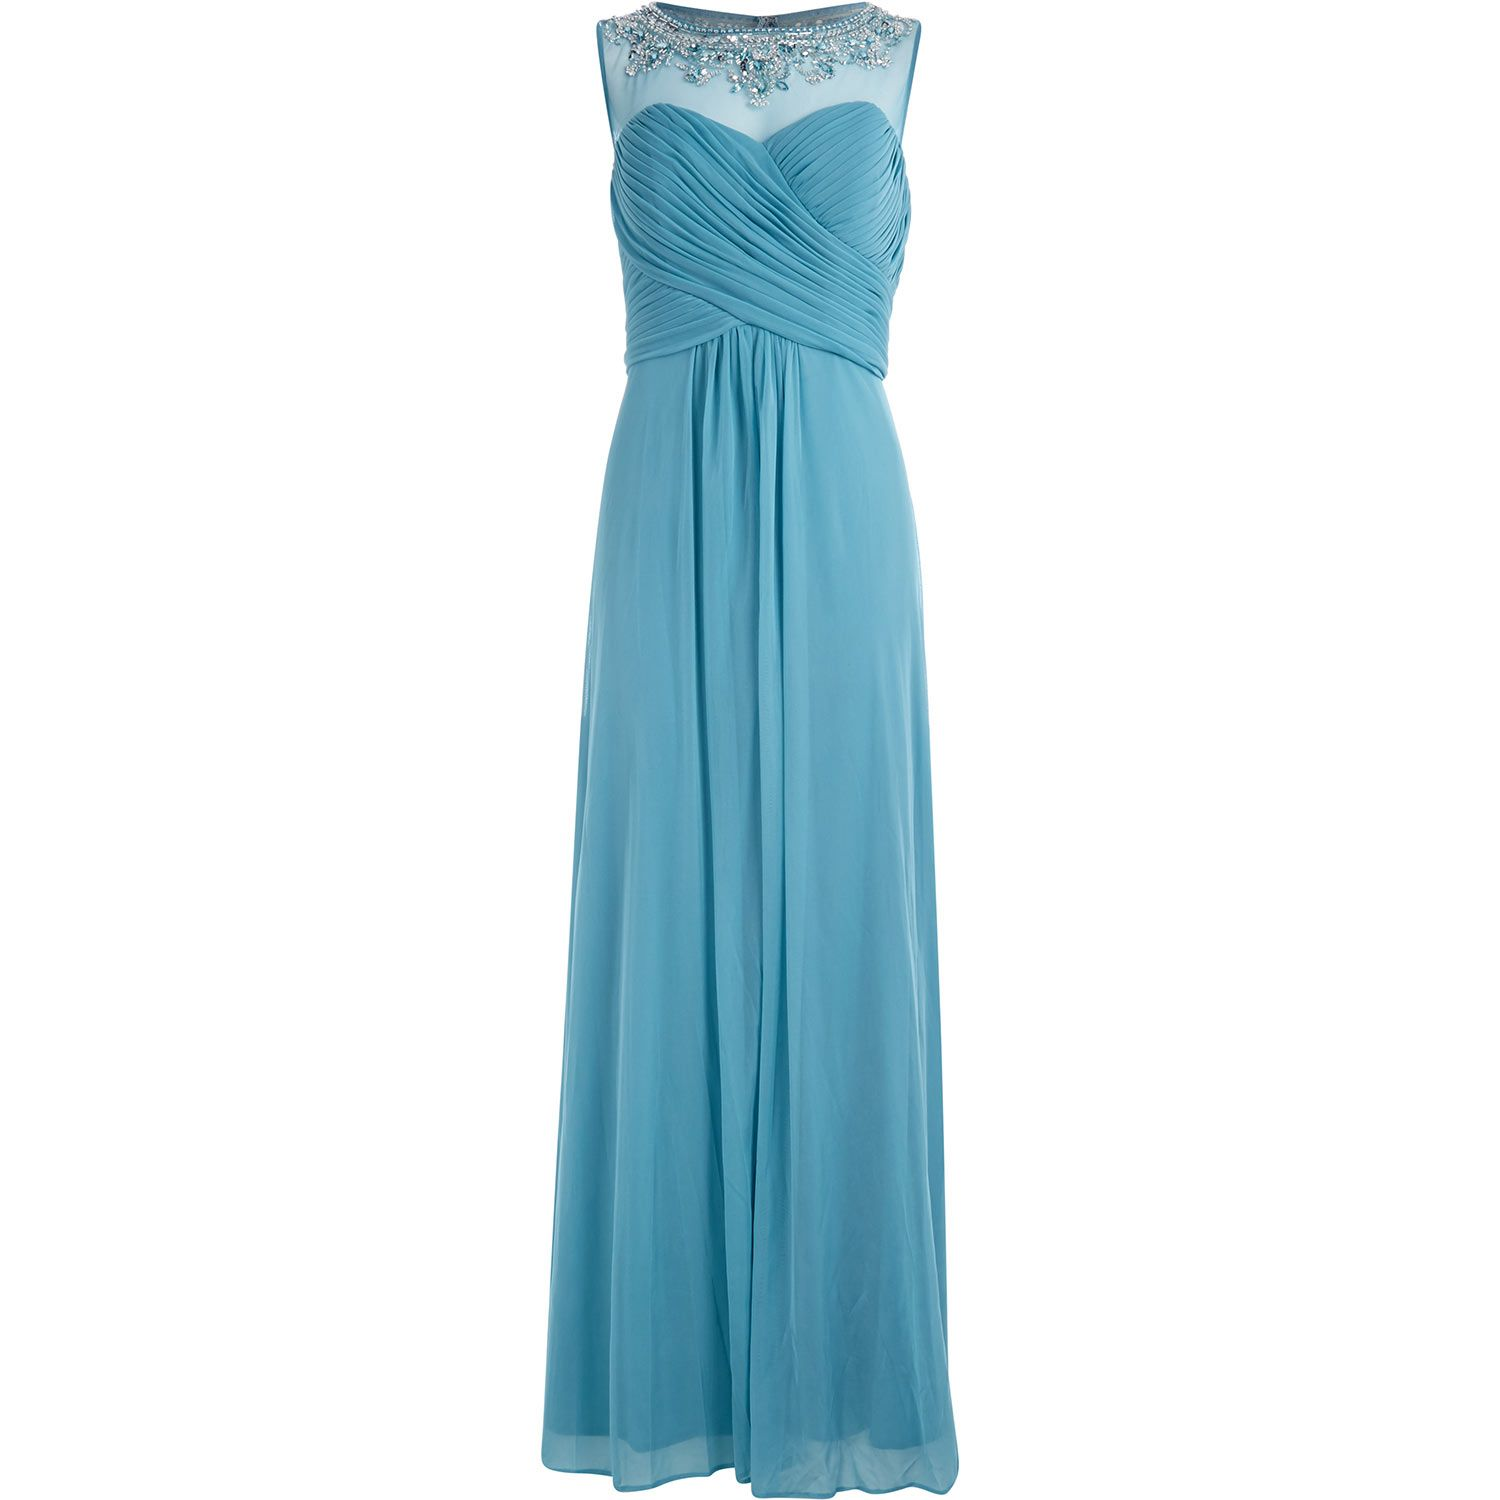 Cool Tk Maxx Prom Dresses Photos - Wedding Ideas - memiocall.com